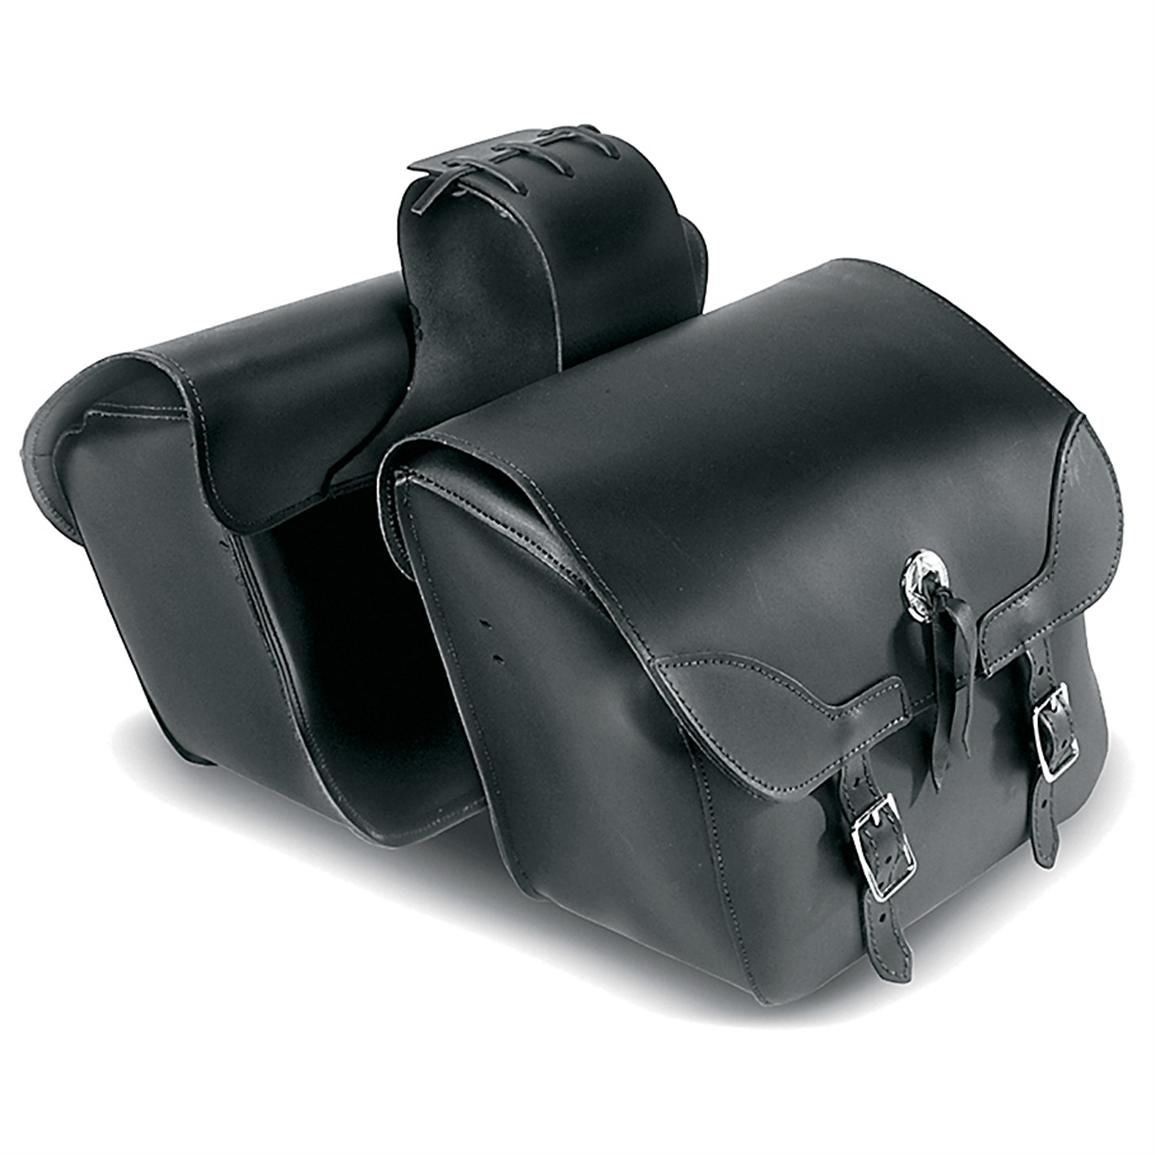 Carroll Heavy-Duty Throw-Over Saddlebags with Concho